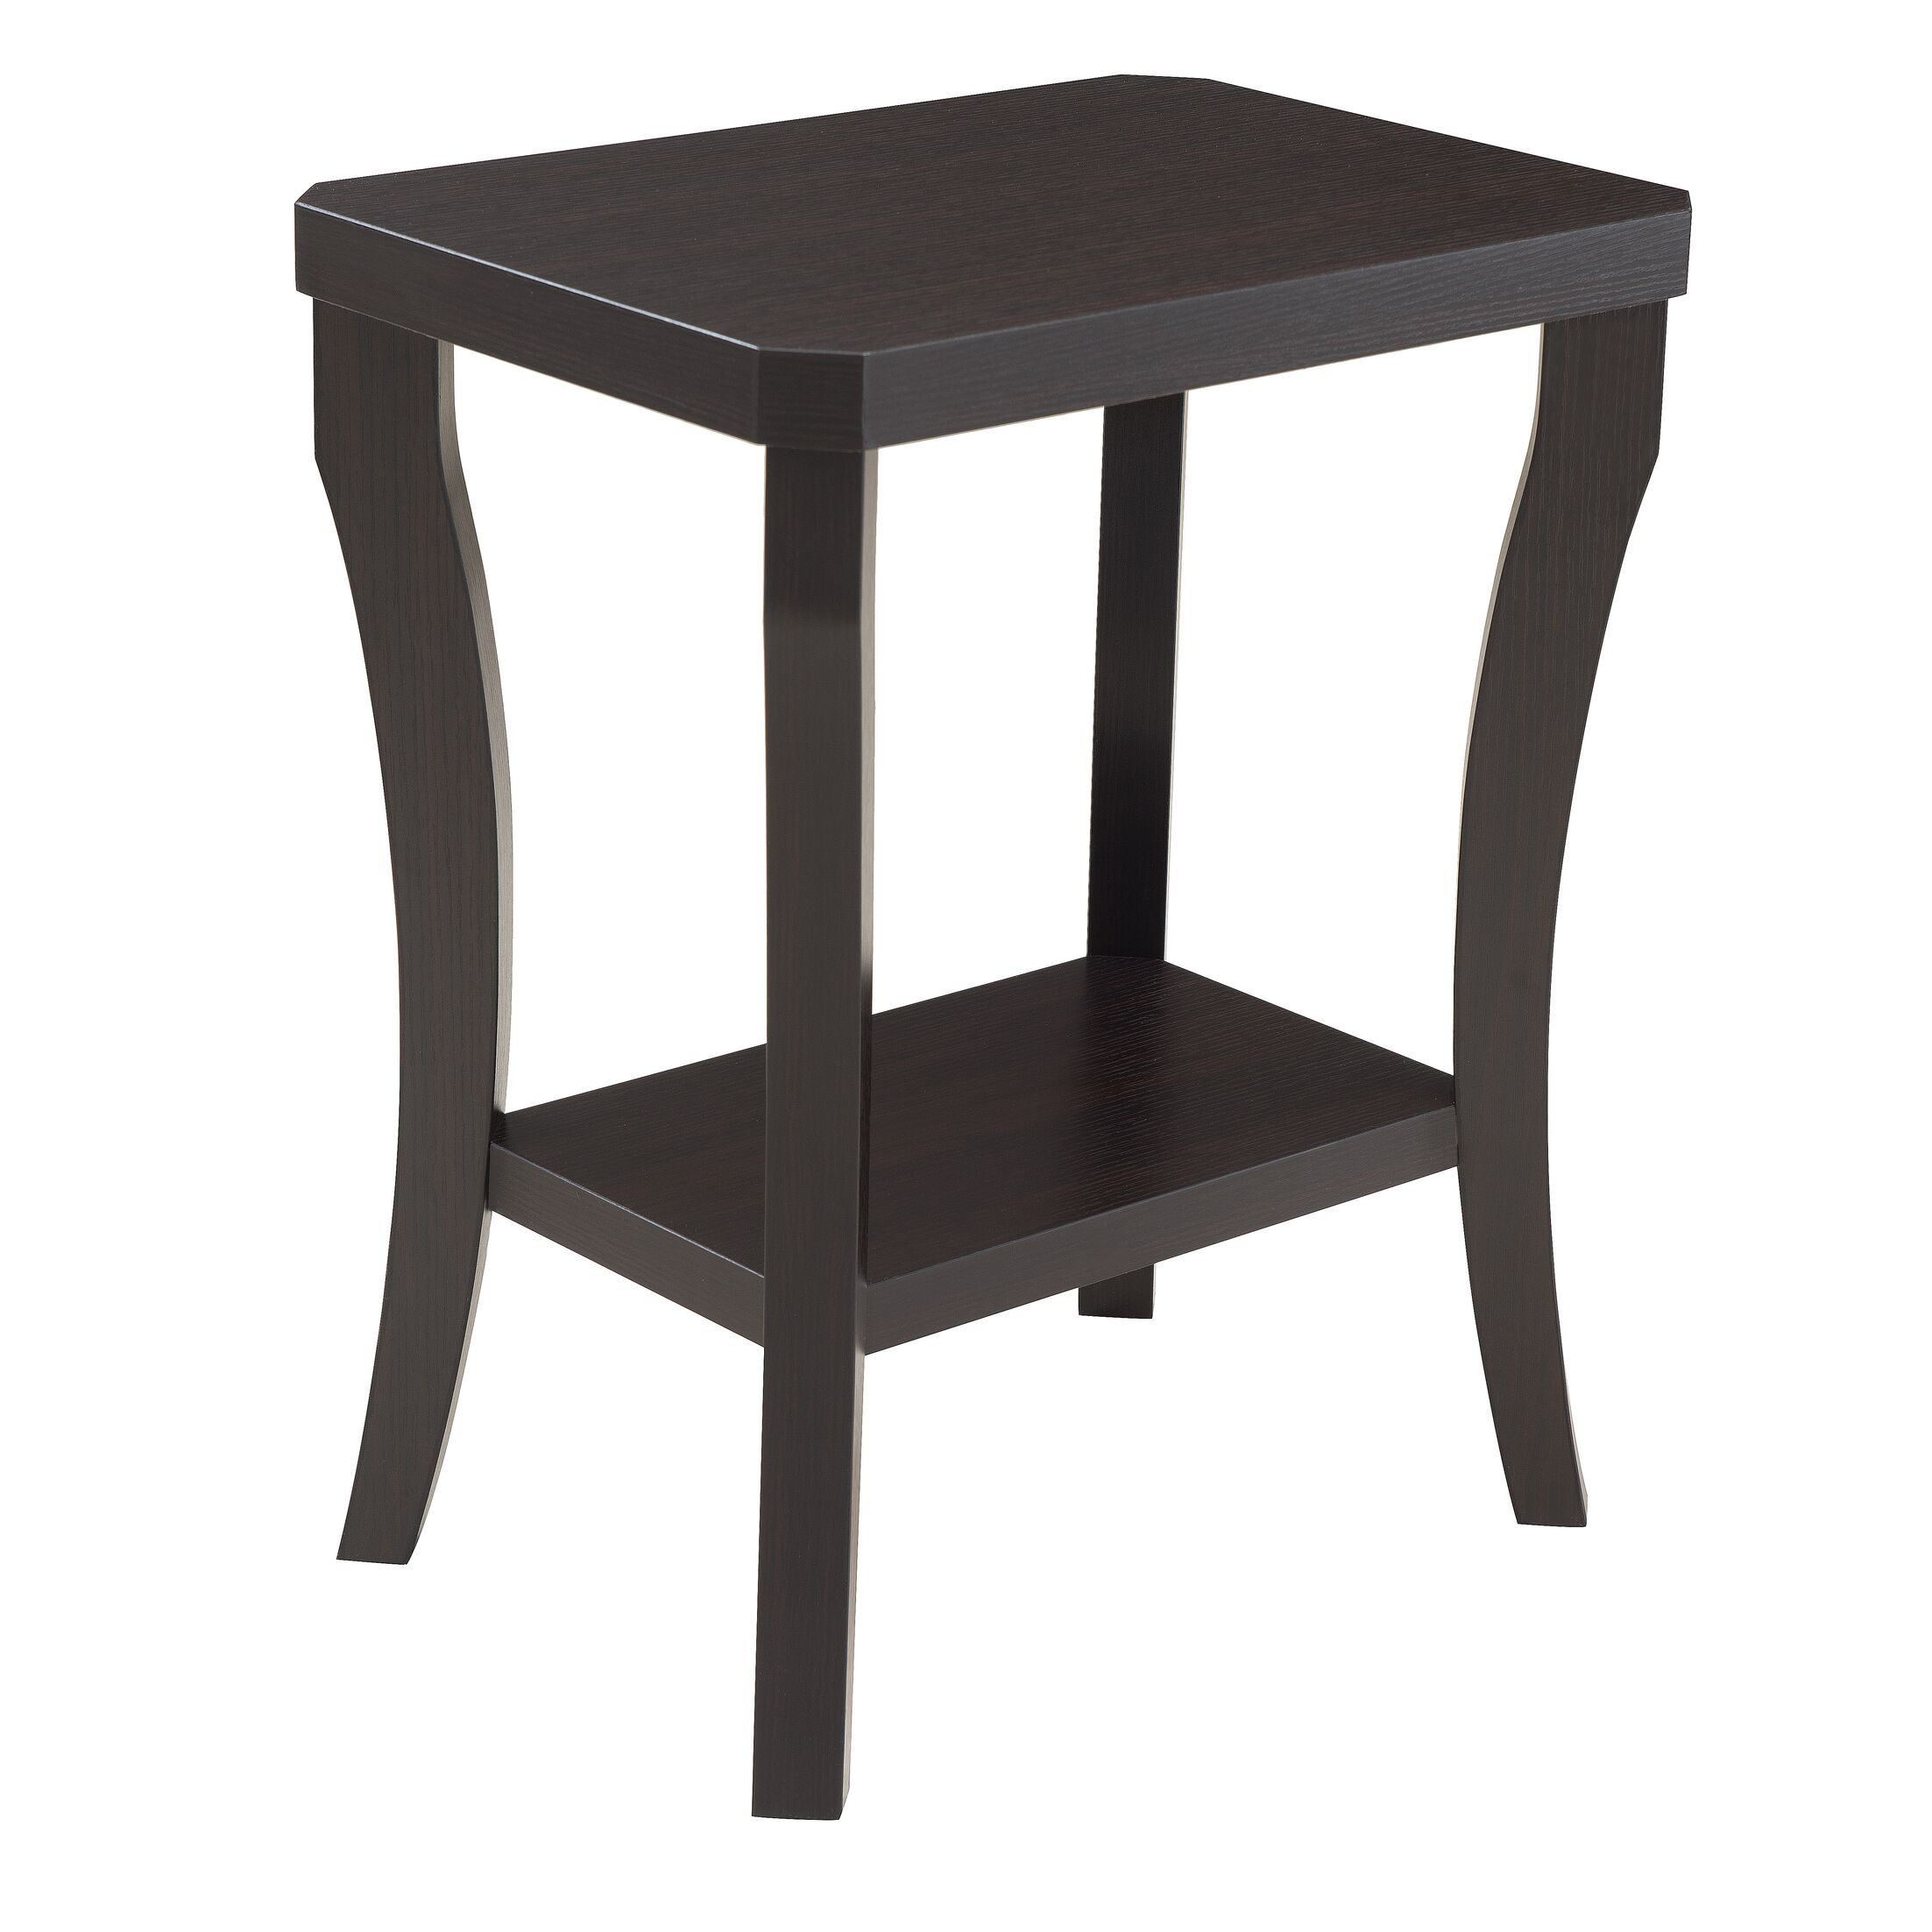 Simmons Casegoods Gabbard Chairside Table Color: Merlot